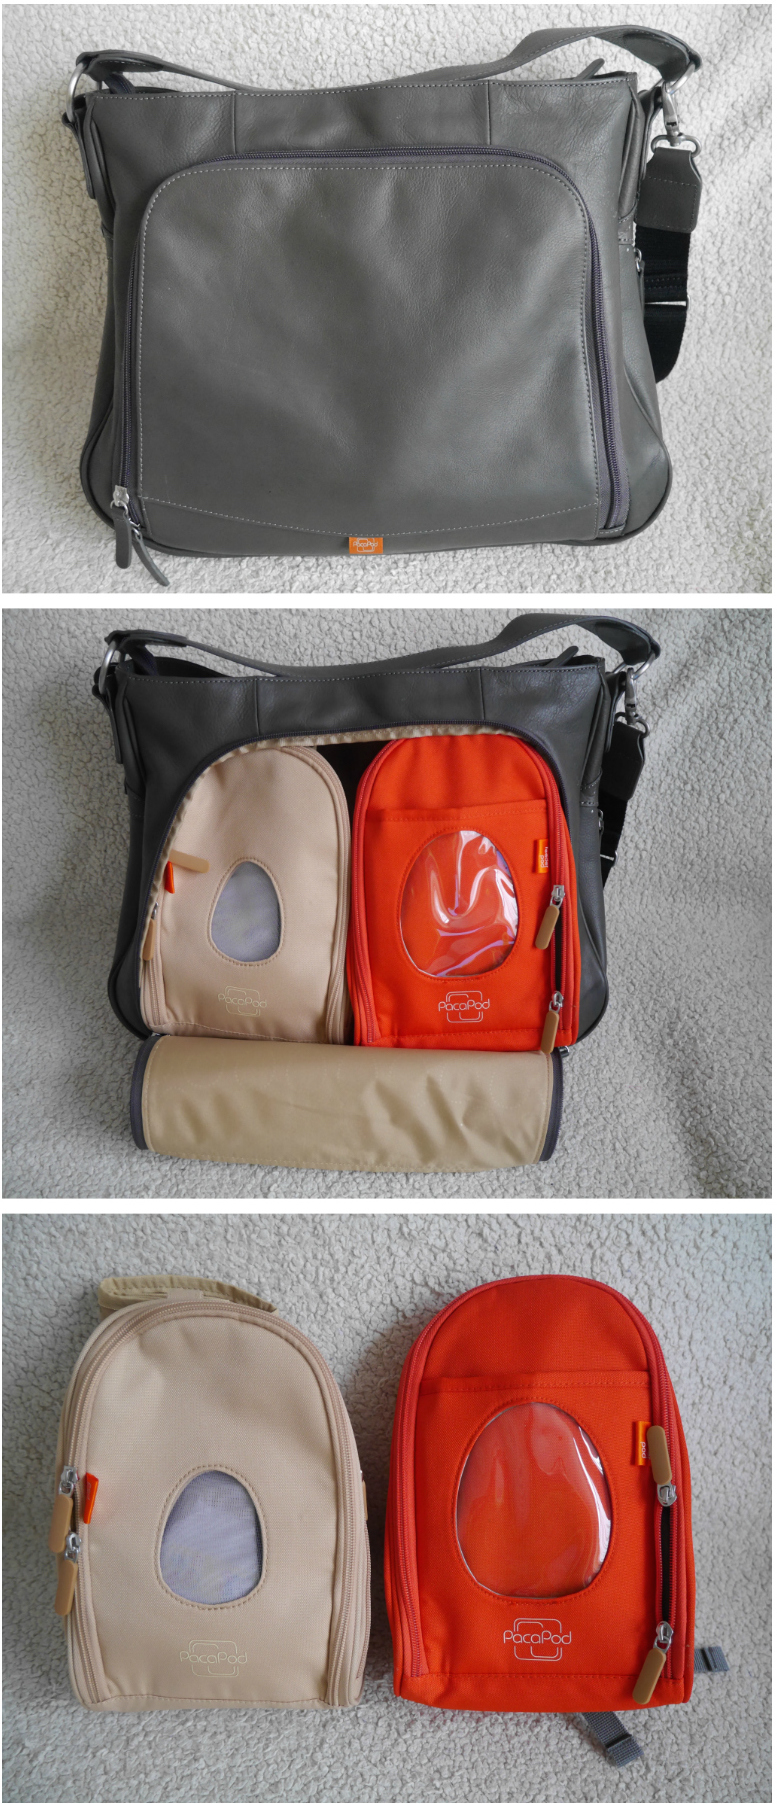 Pacapod sydney change bag with pods